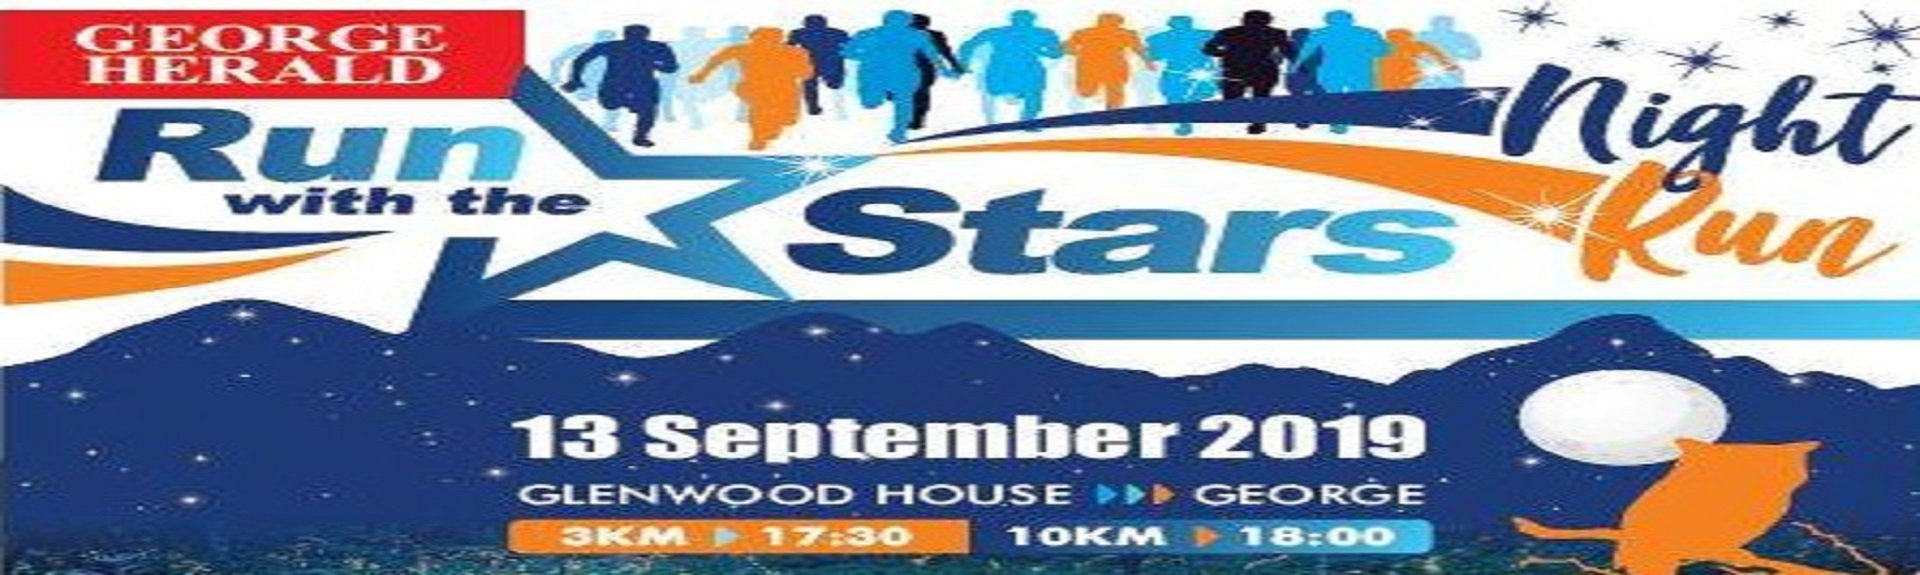 George Herald Run with the Stars night race | Garden Route | Things to do With Kids